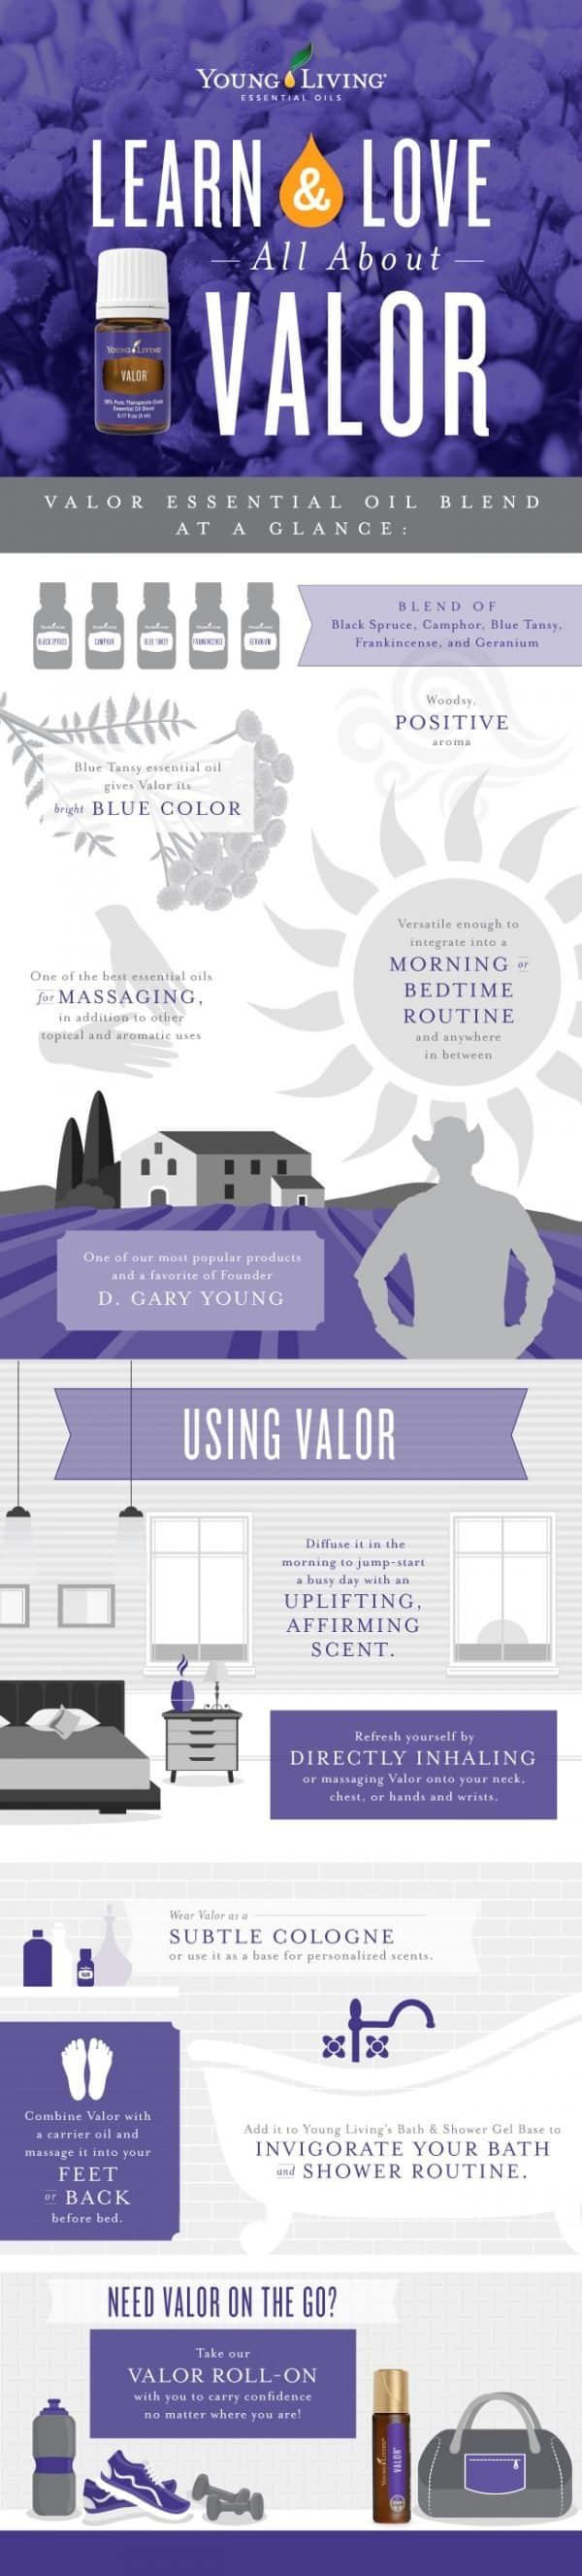 ALL ABOUT VALOR INFOGRAPHIC